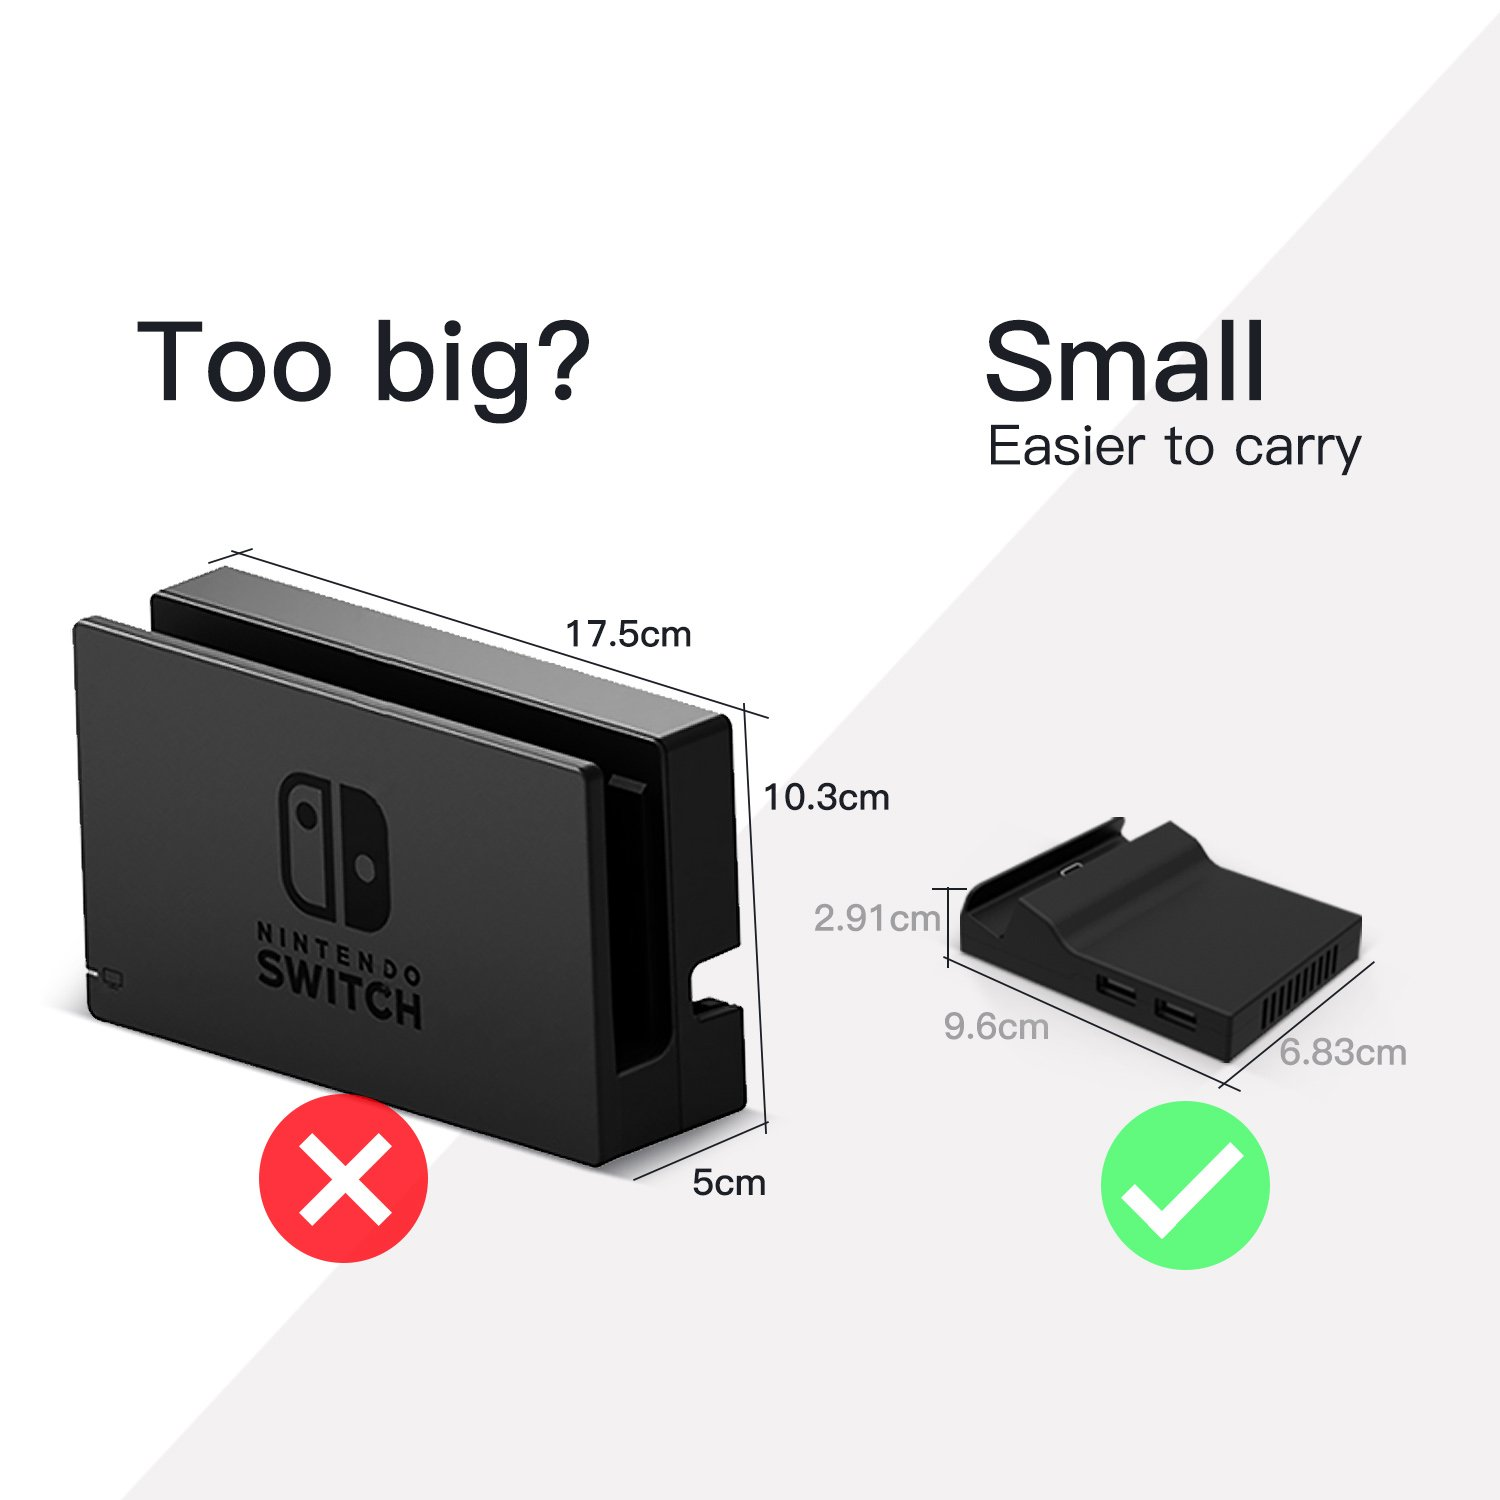 Basstop Portable Dock Replacement Case For Nintendo Custom Mod Micro Usb Flash Drive Diy Modding And Switch Only The You Have To With Circuit Board Chip From Original